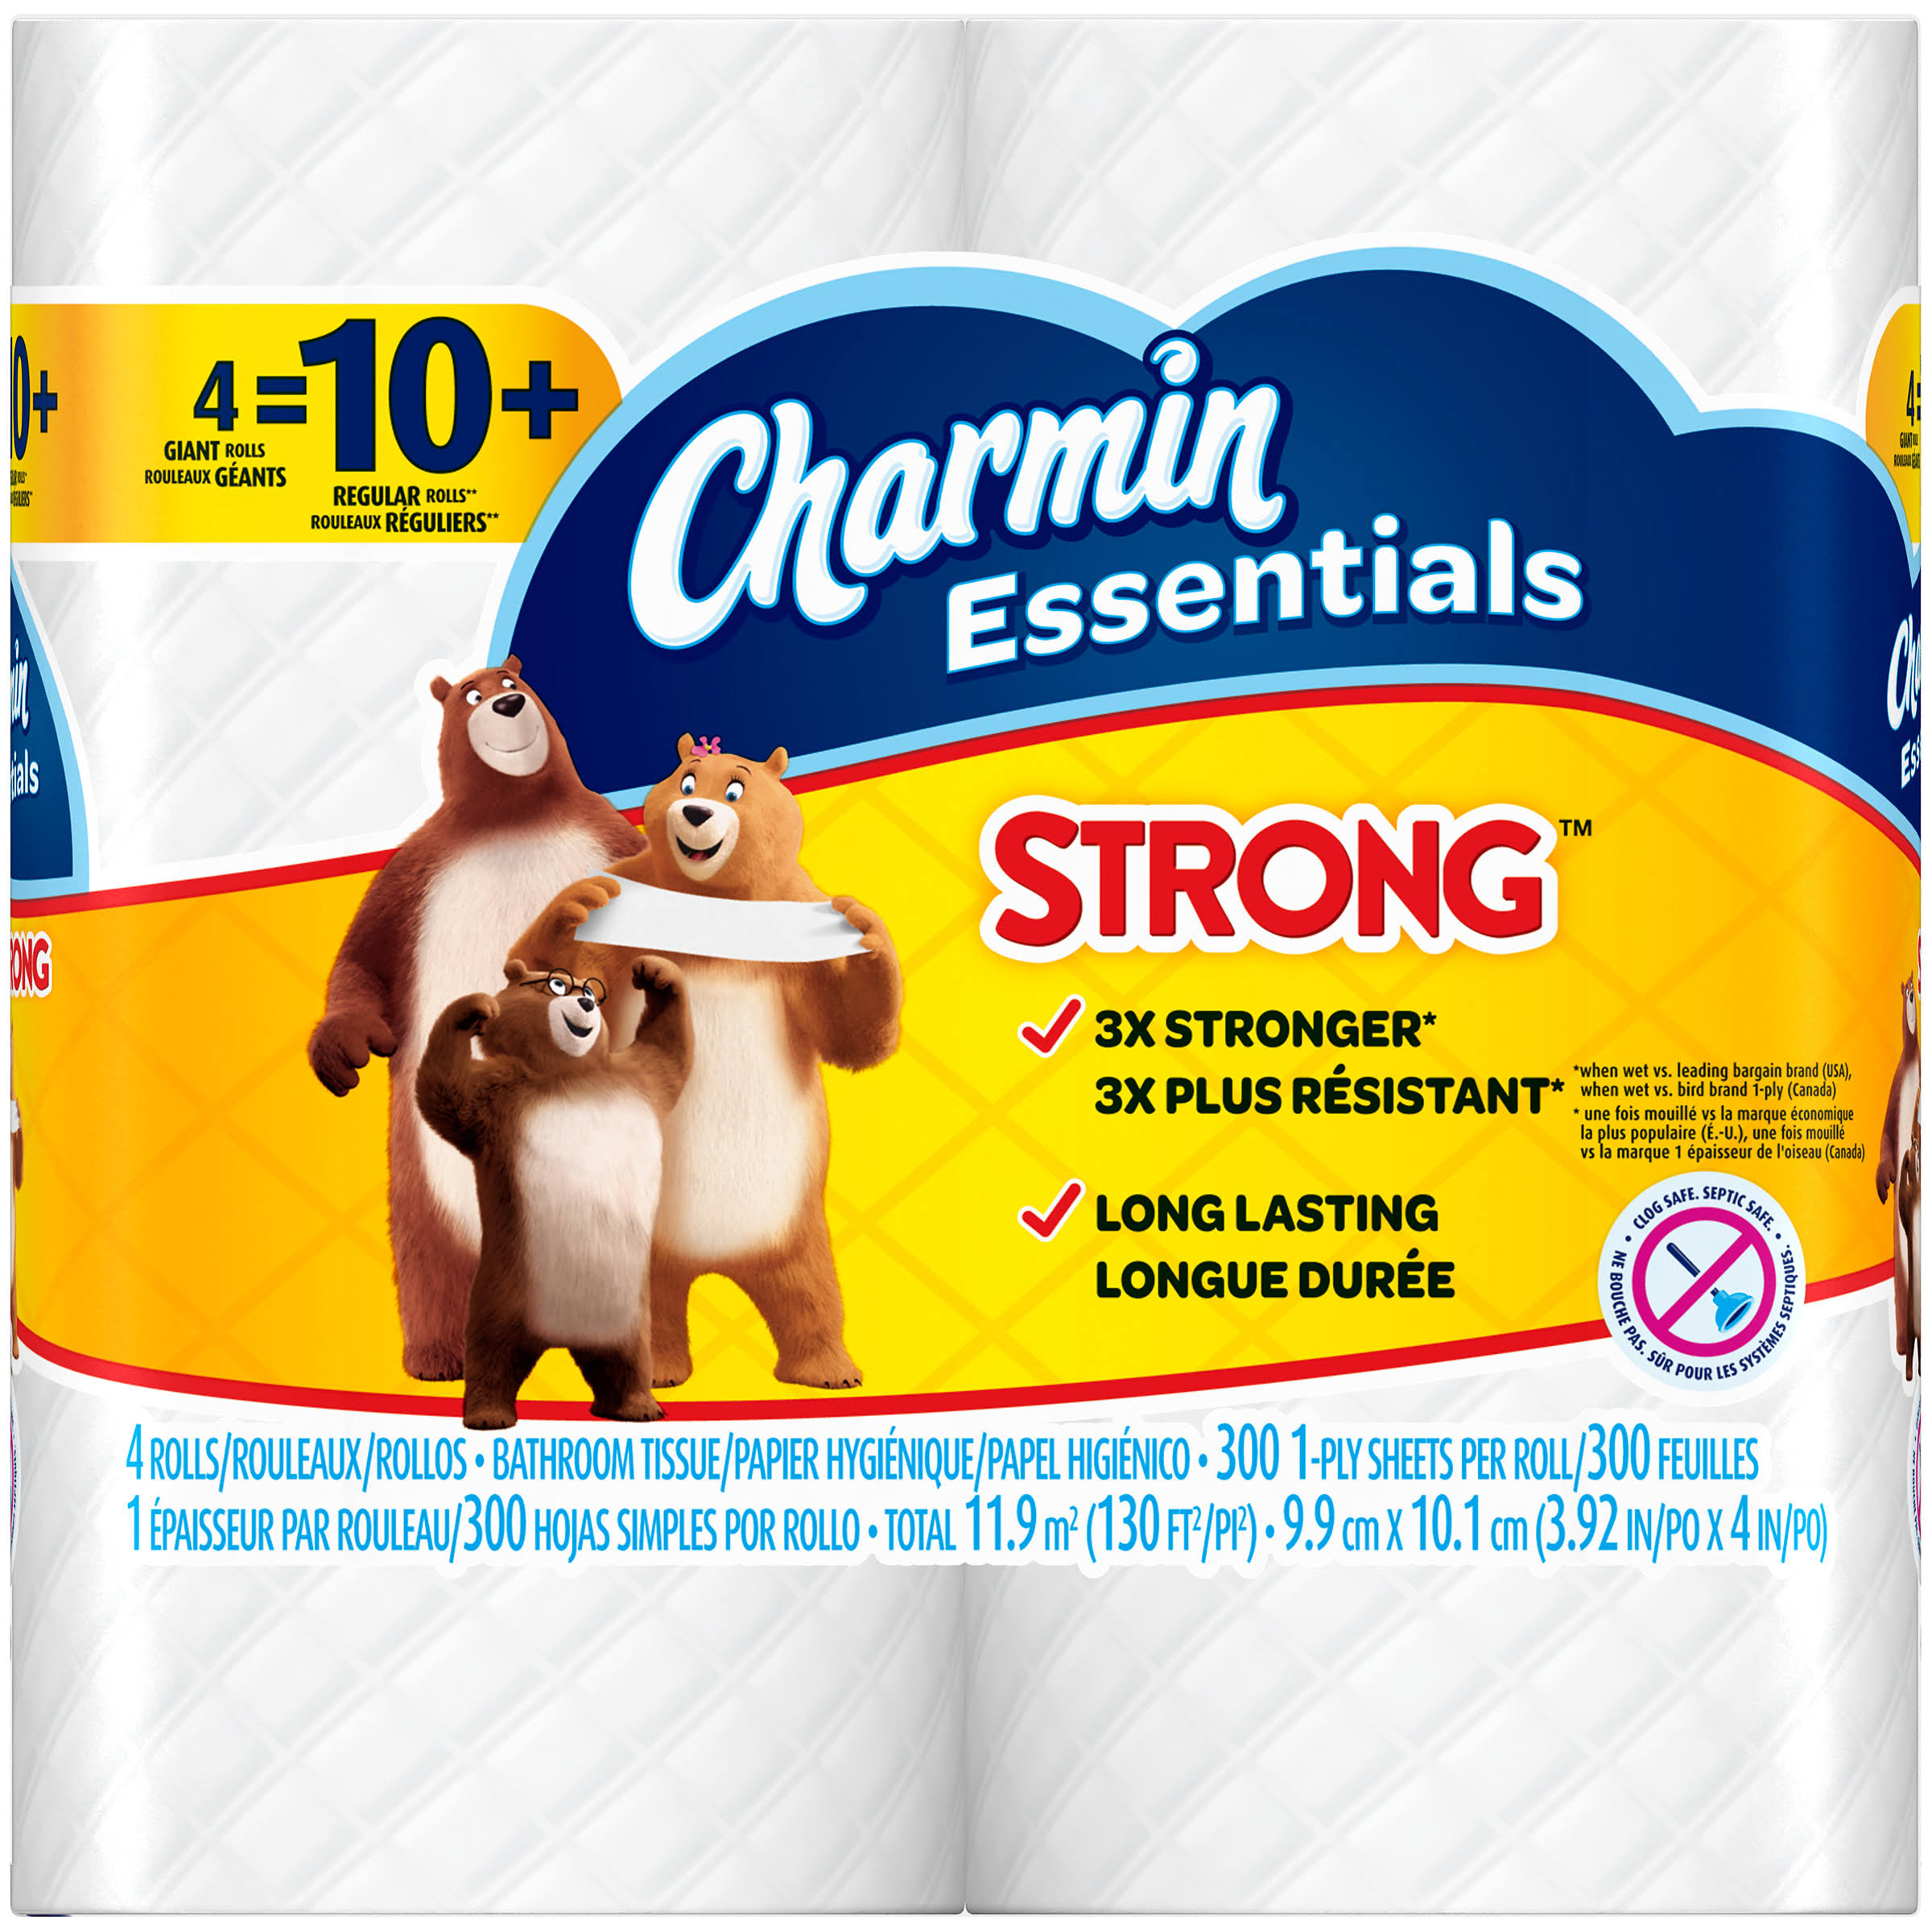 Charmin 96891 Essentials Strong Toilet Paper - 4 Rolls